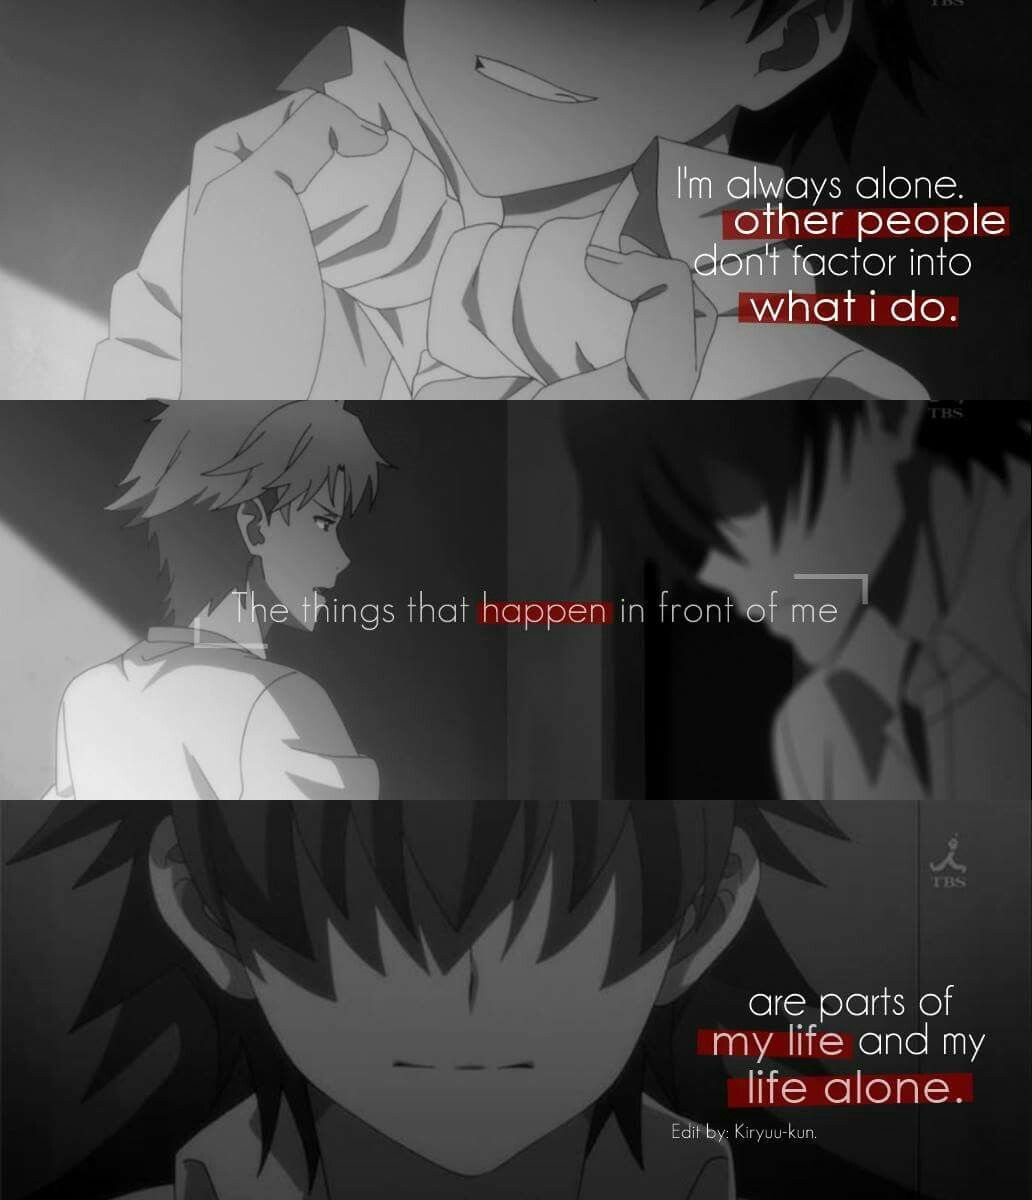 Incredible! 30 Greatest Anime Quotes Of All Time ⋆ Anime & Manga -  Incredible! 30 Greatest Anime Quotes Of All Time  - #Anime #animecute #animedibujos #animemujer #animequotes #Greatest #Incredible #manga #Quotes #time